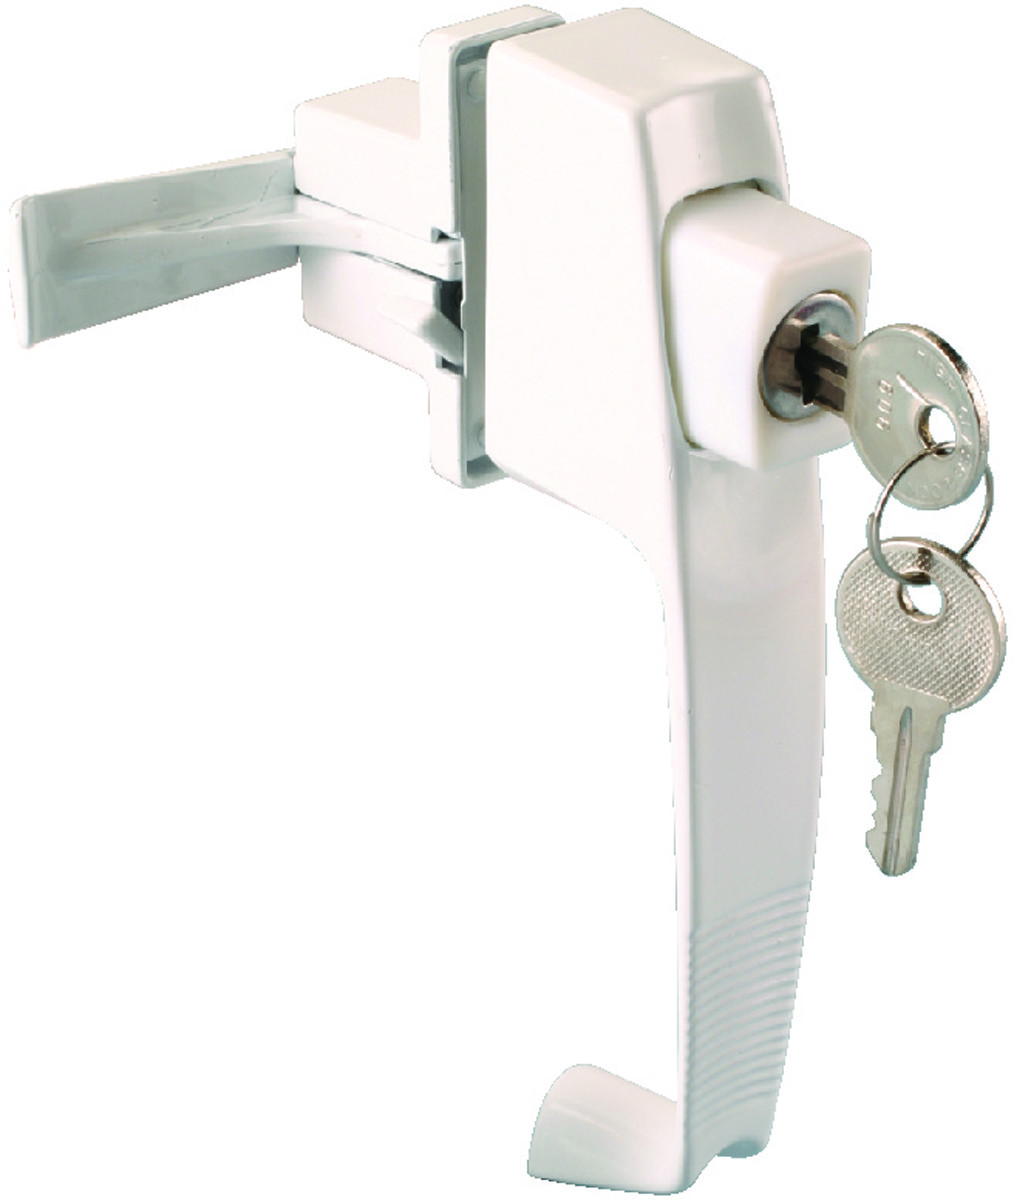 Prosource 47015 Ukw Ps Storm And Screen Door Latch Push Button Keyed